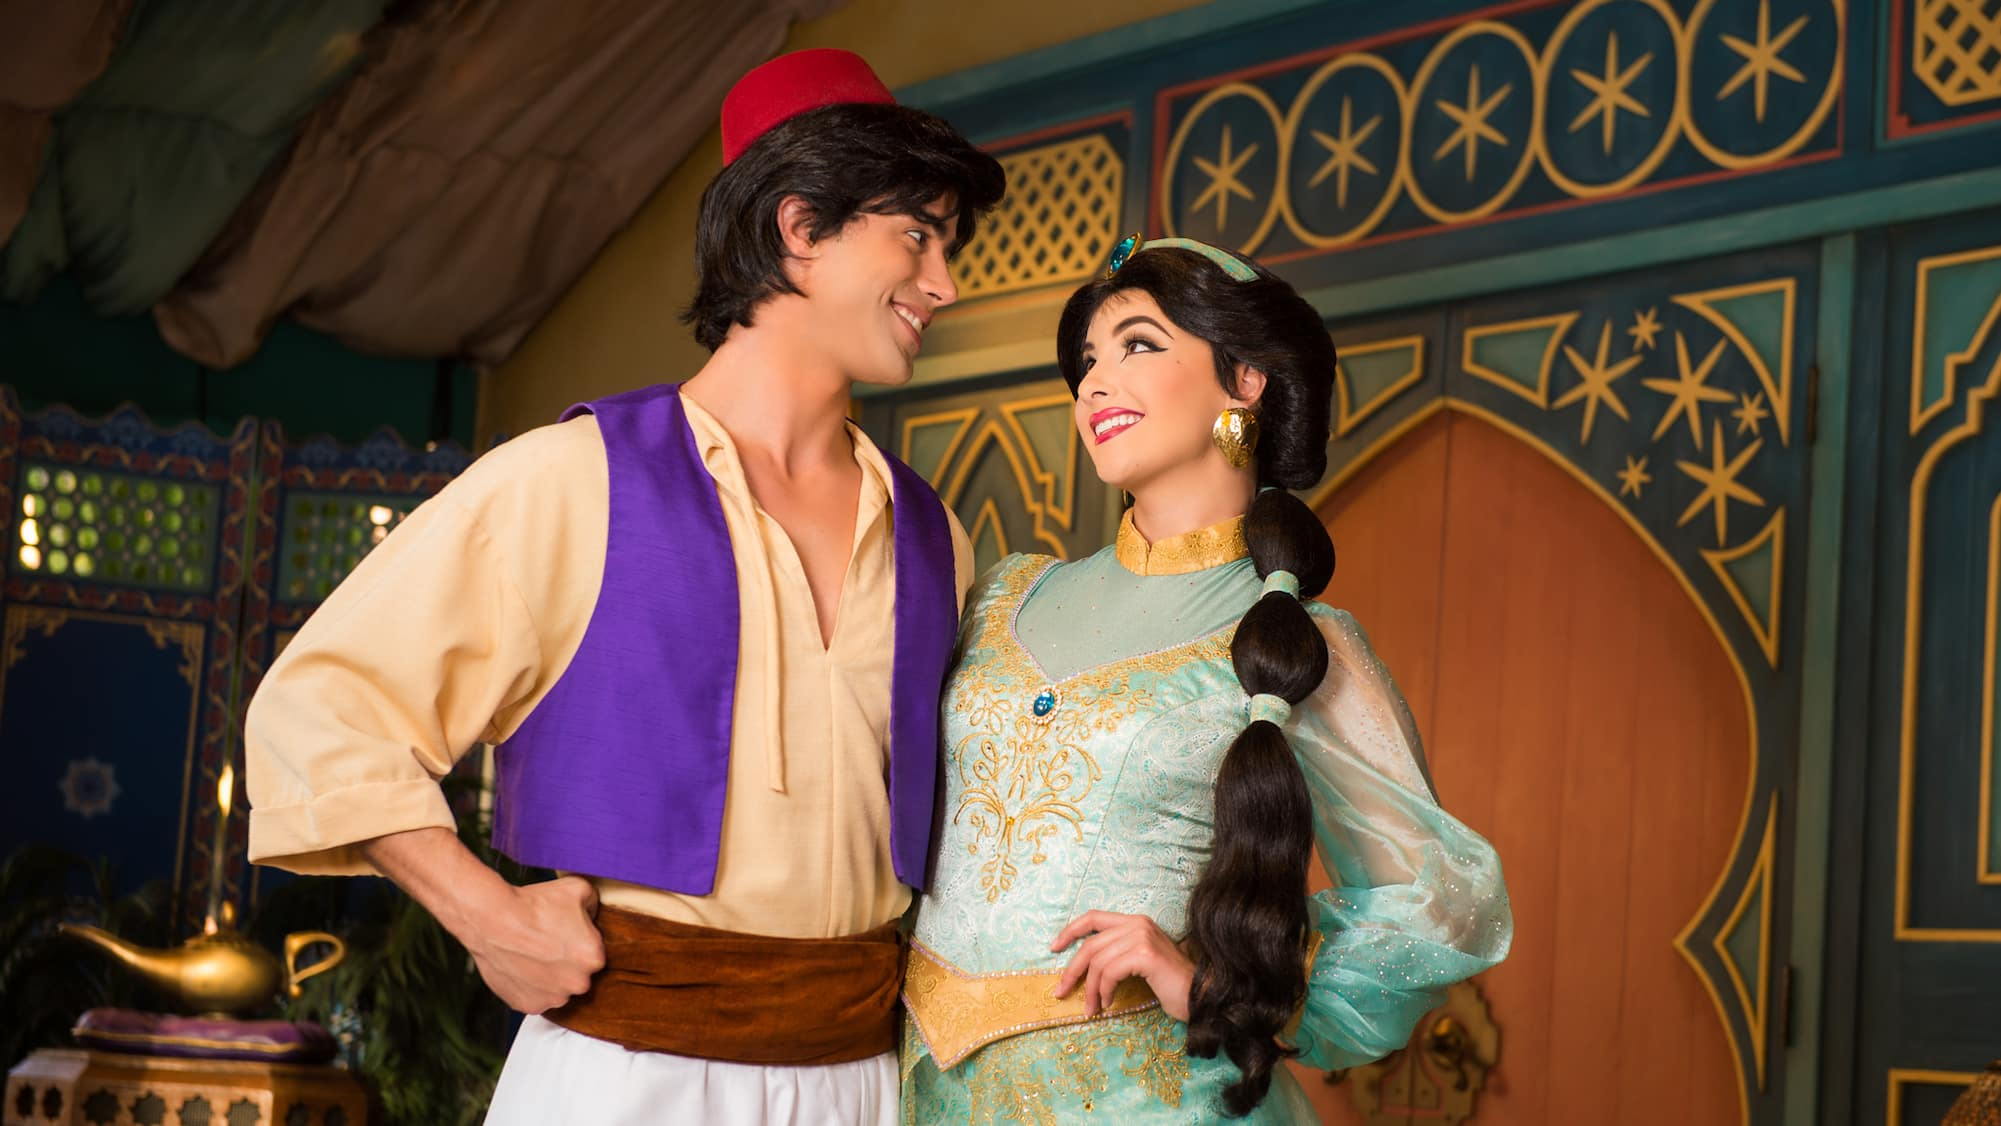 Aladdin and Disney Princess Jasmine stand arm in arm, smile and gaze into each others